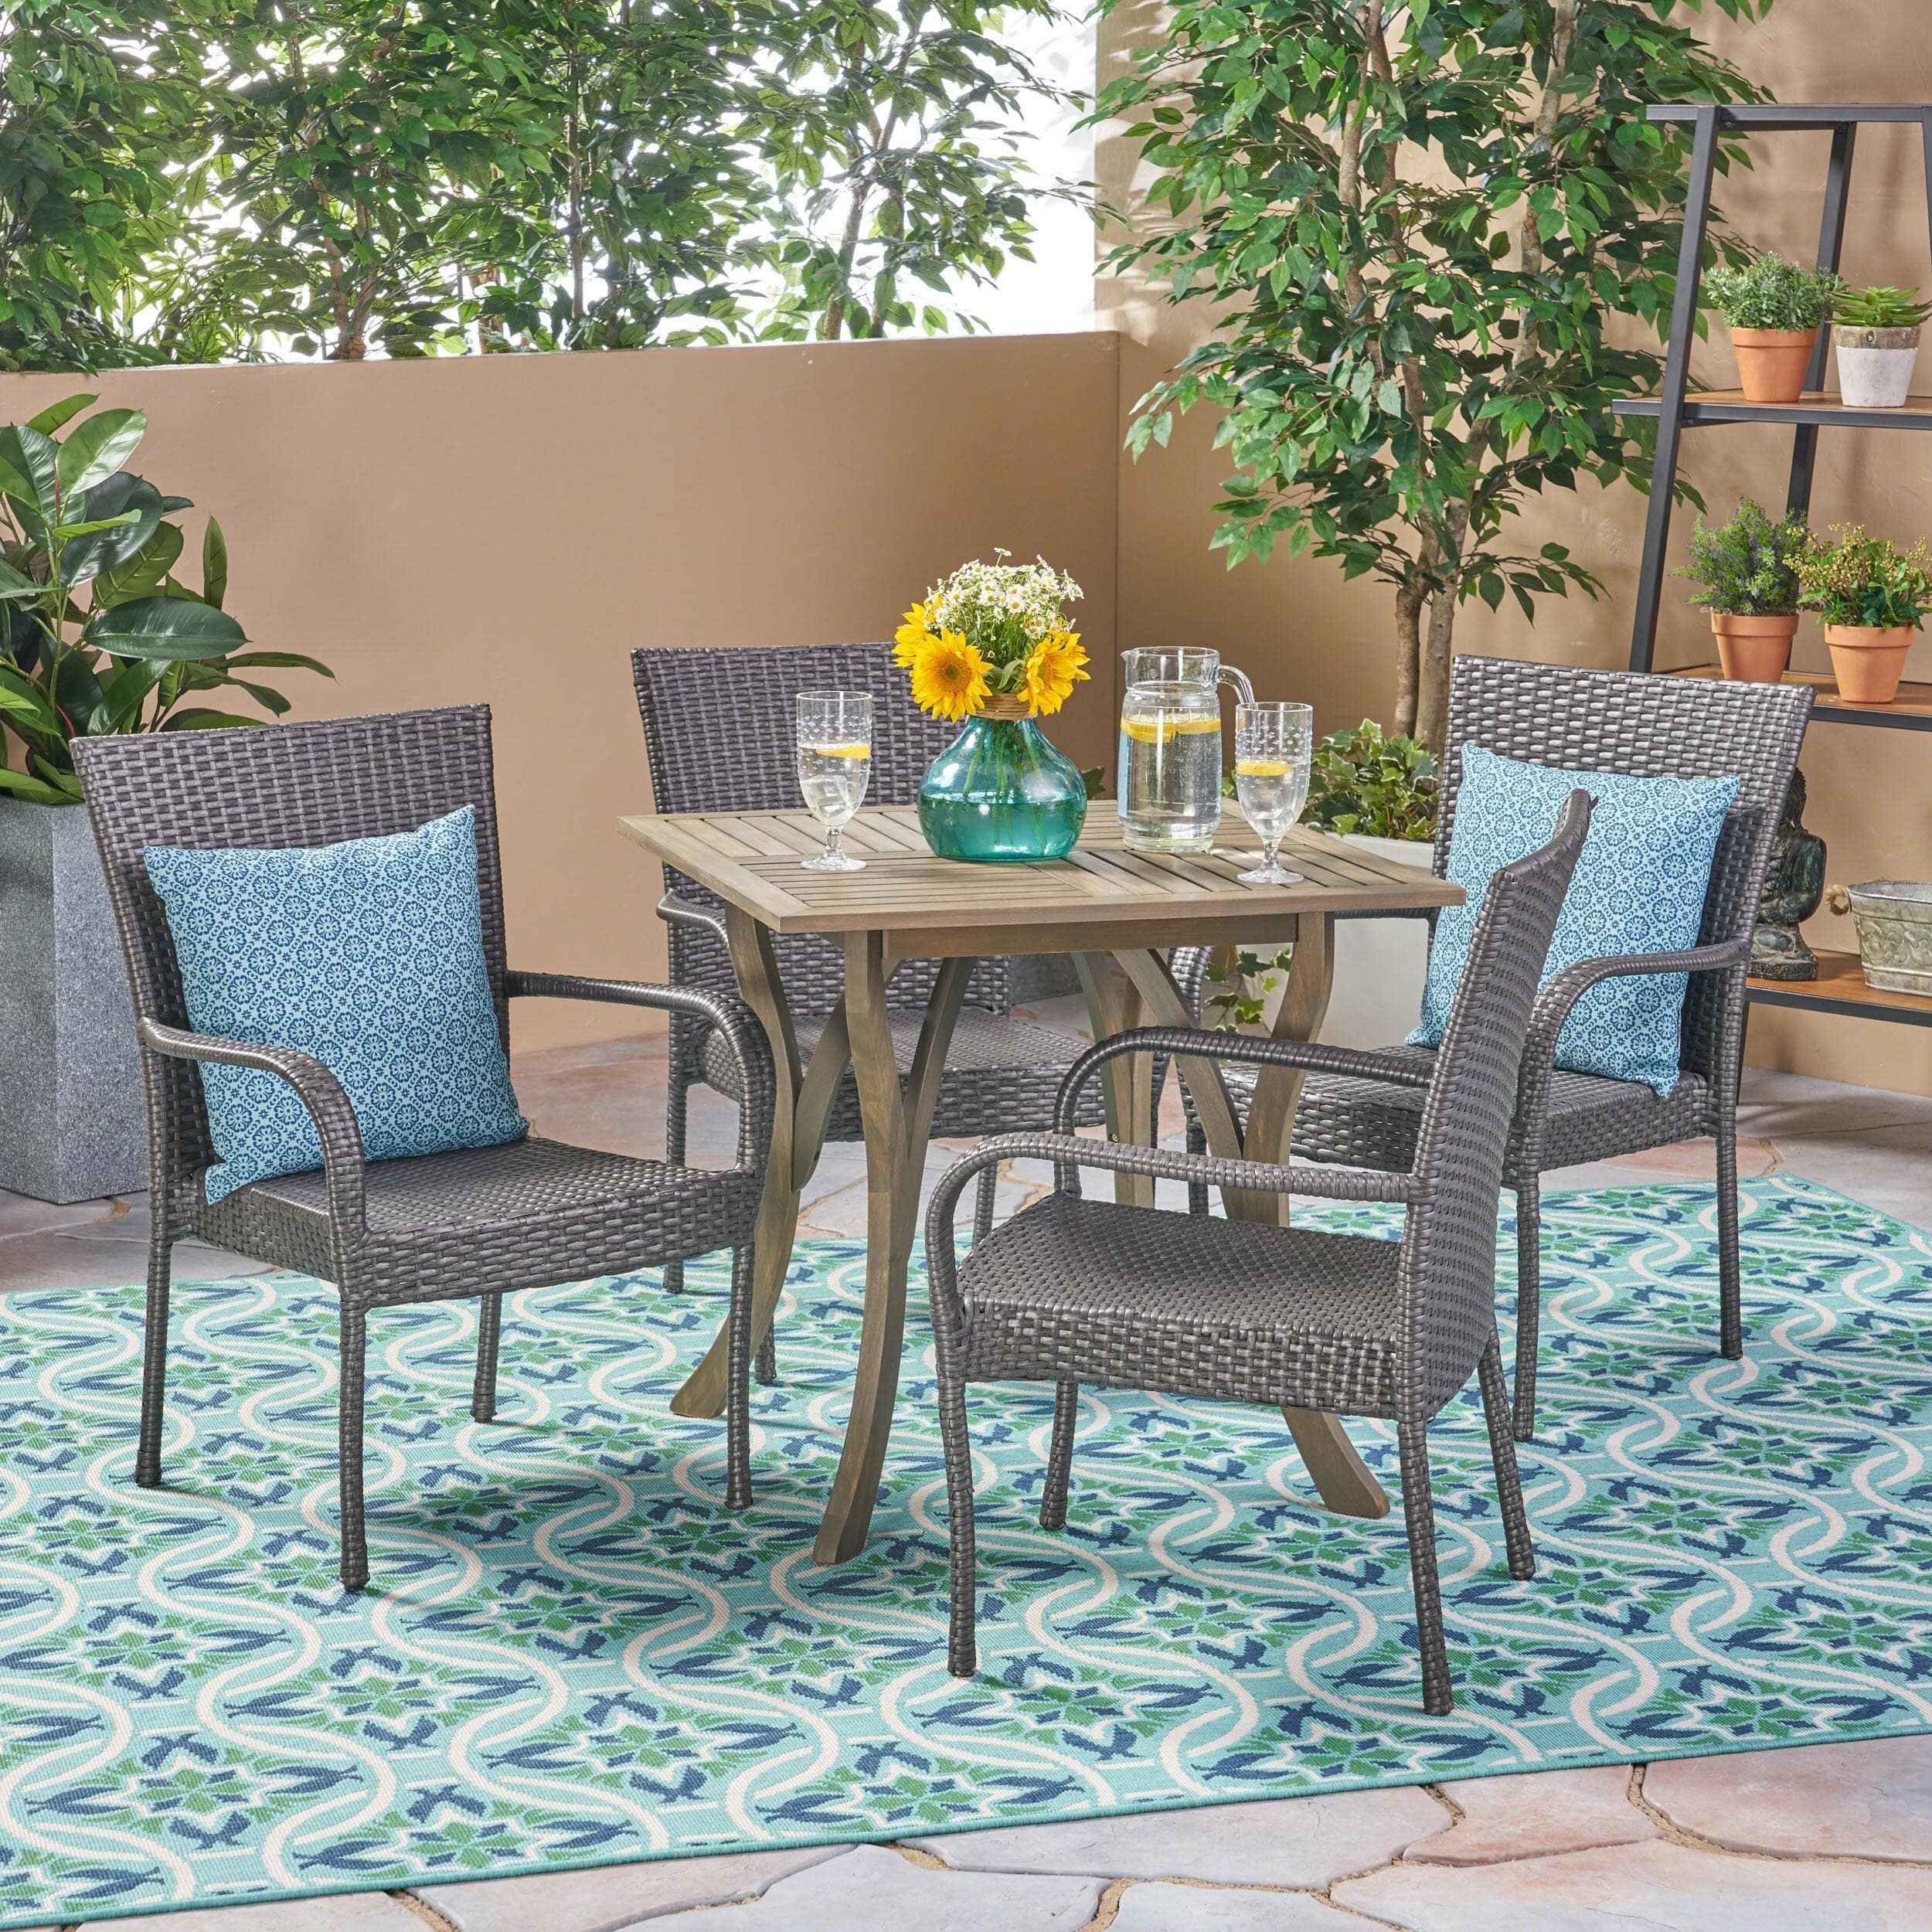 Christopher Knight Home Briar Outdoor 5-piece Acacia Wood/ Wicker Dining Set by